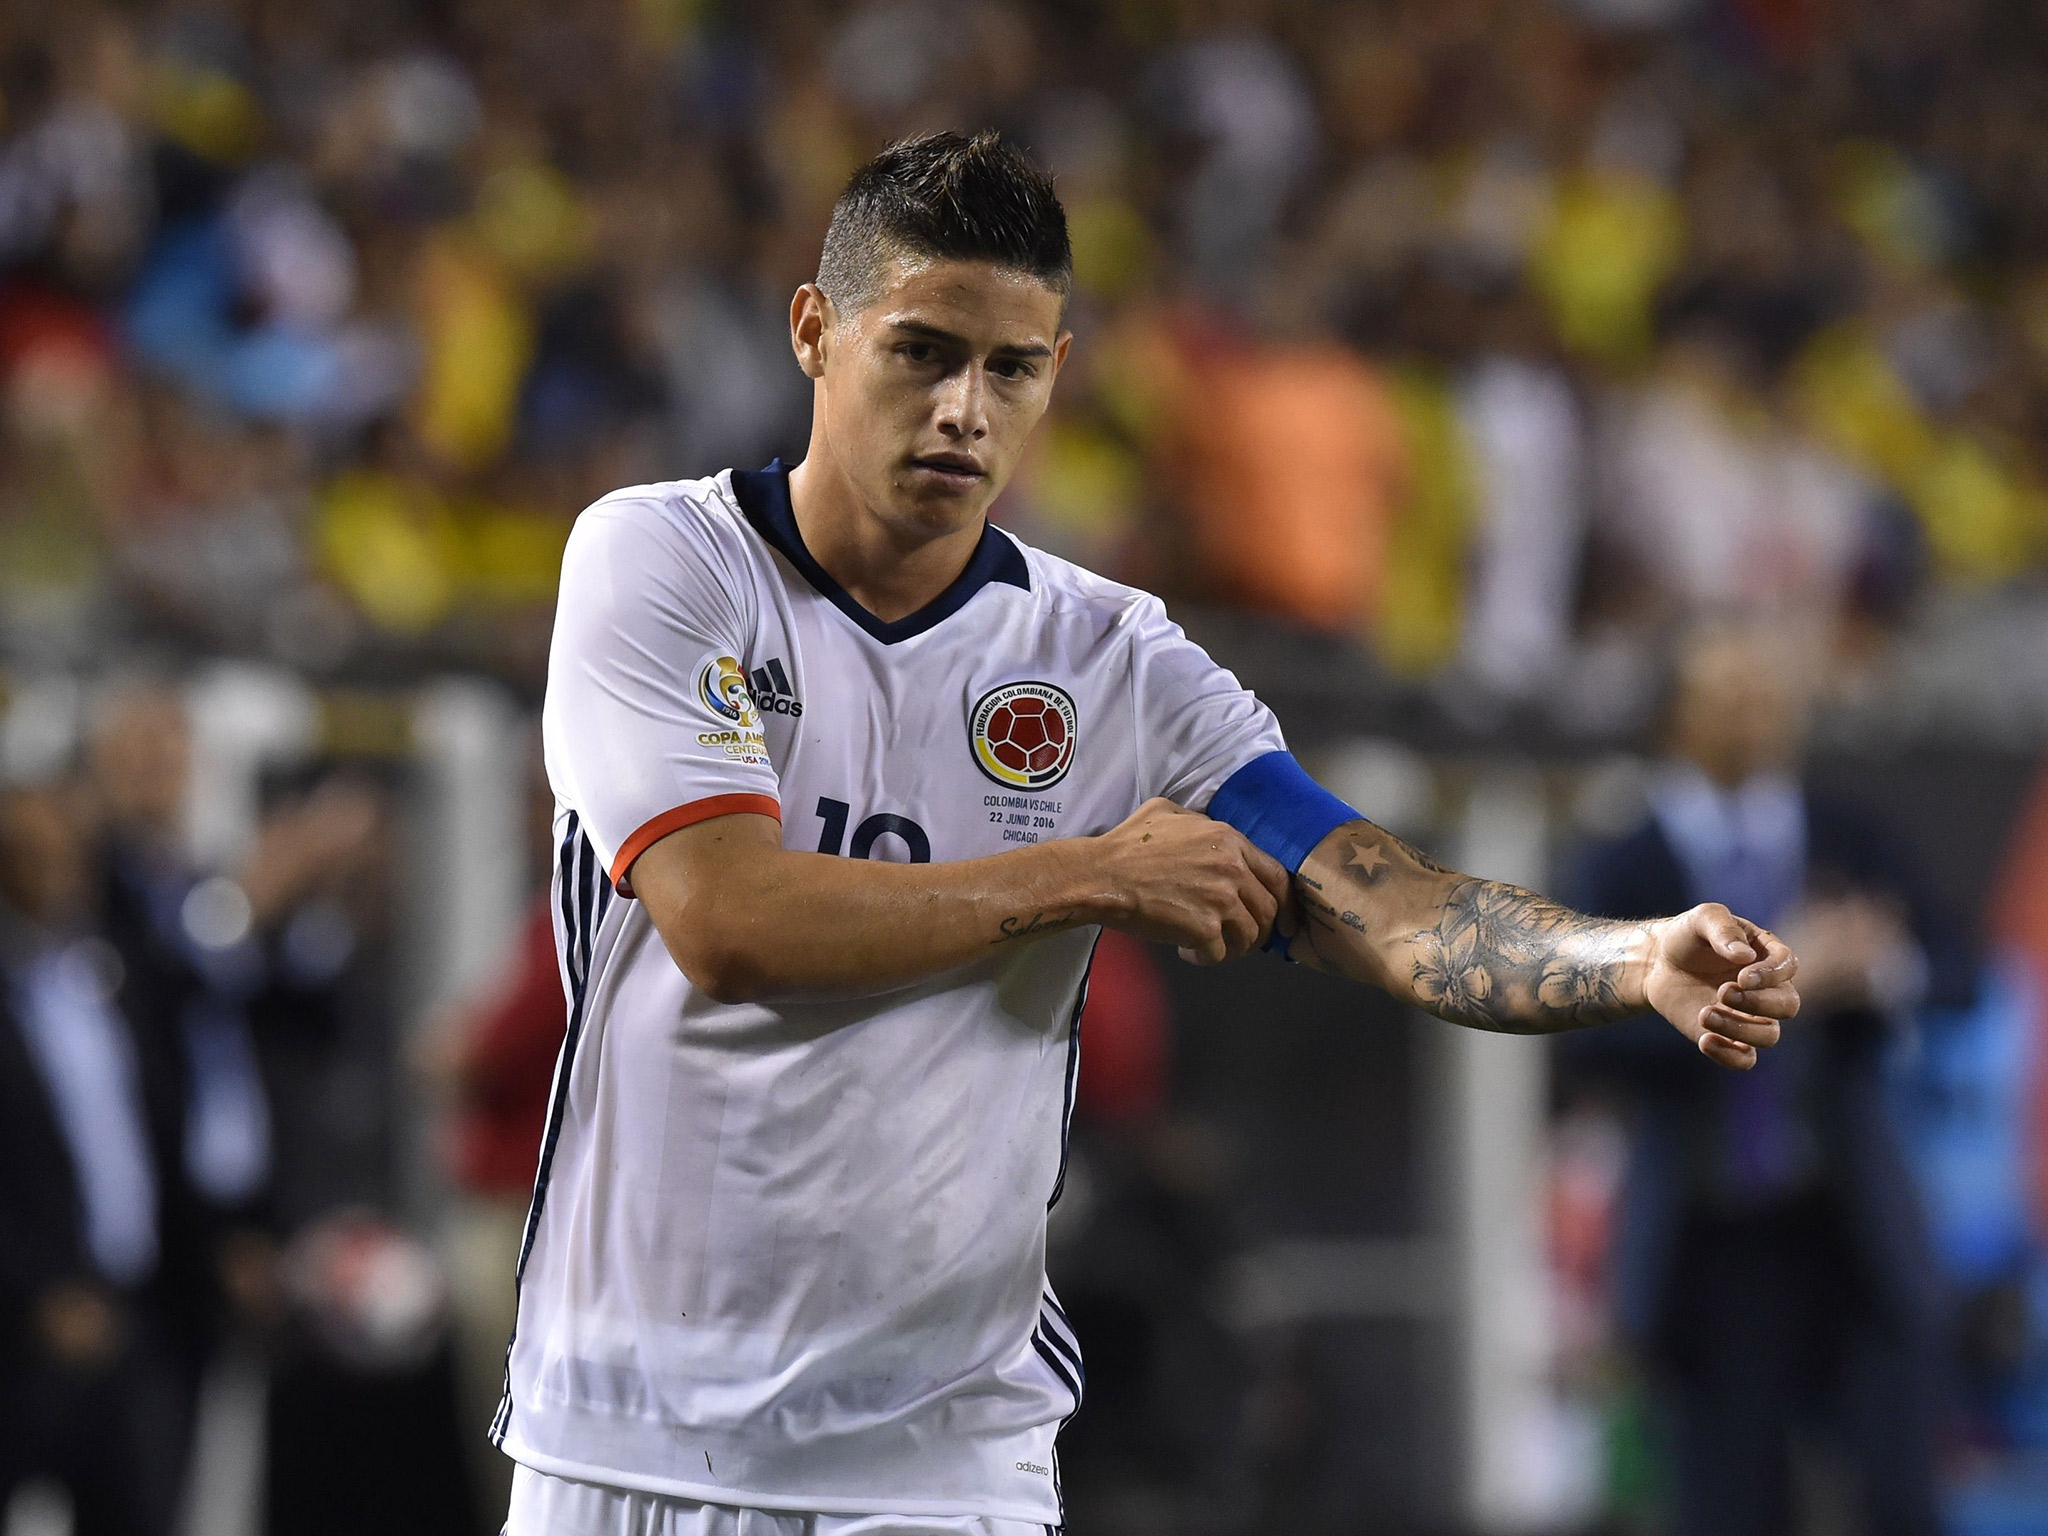 James rodriguez wallpapers images photos pictures backgrounds - James rodriguez wallpaper hd ...